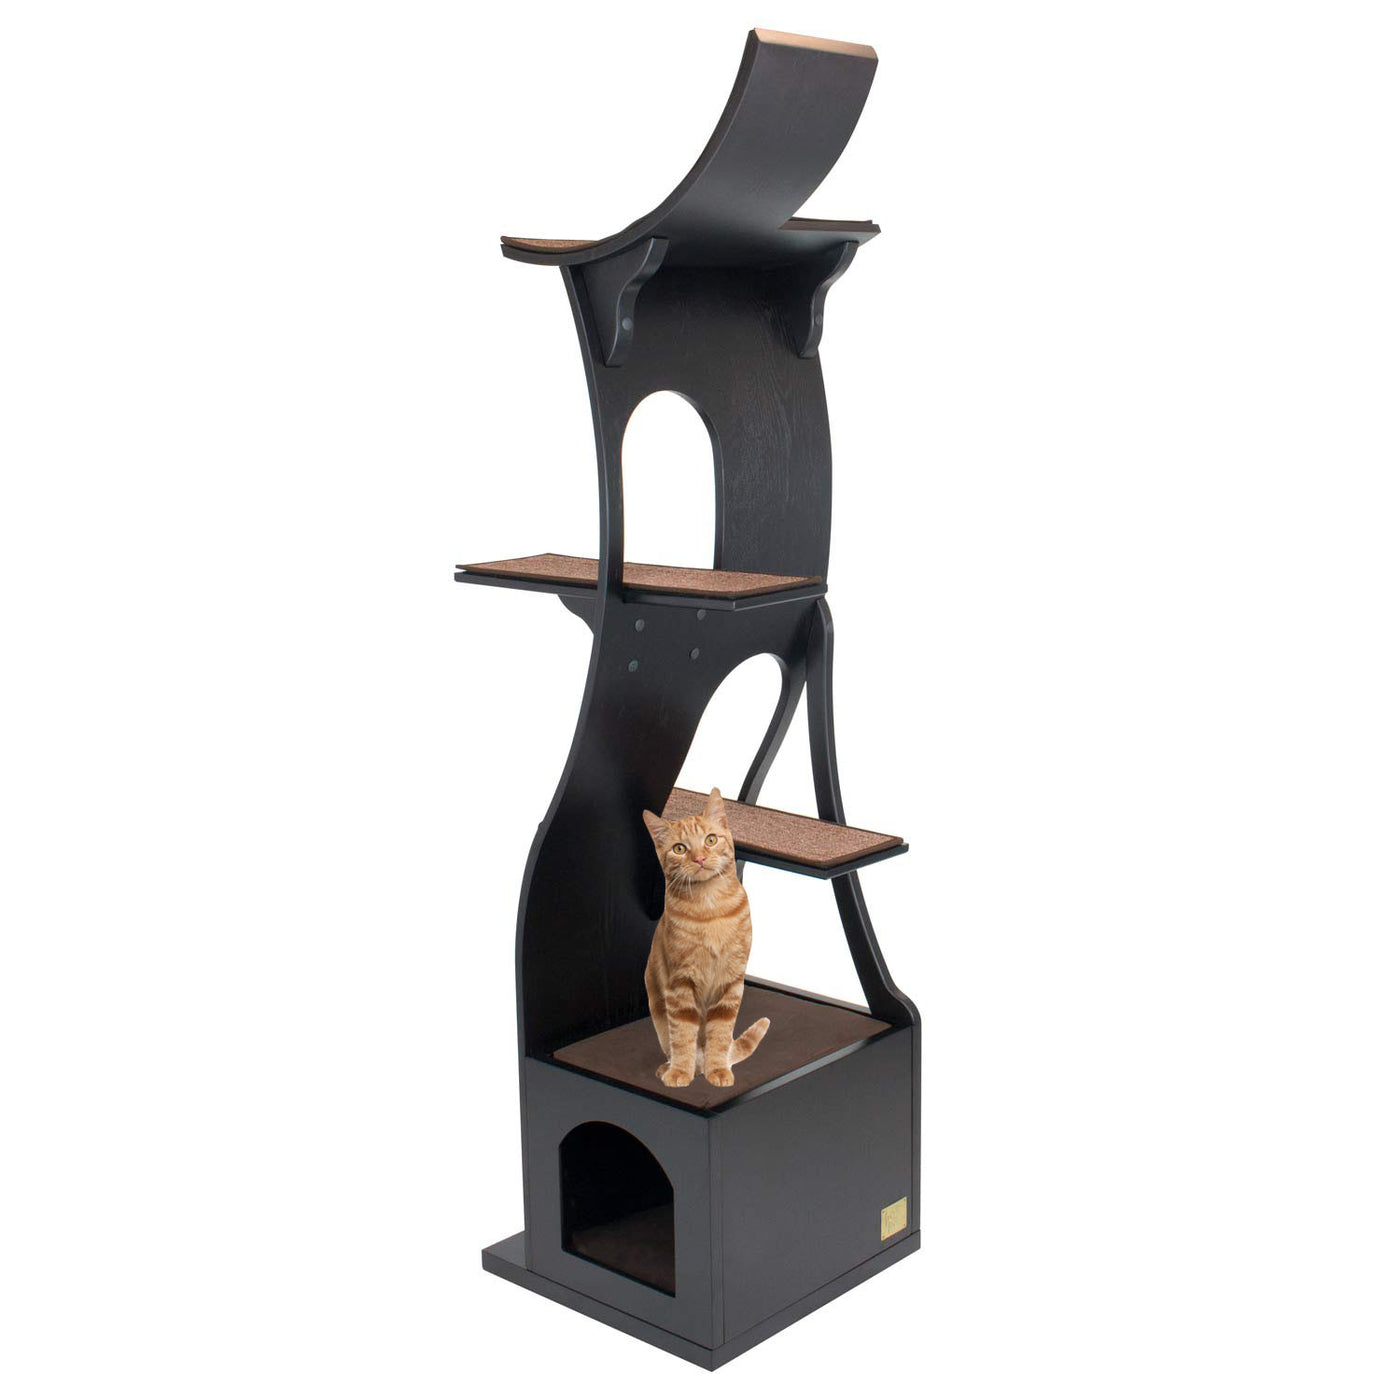 cat tree  stylish wood cat tower with dark brown finish  - stylish wood cat tree tower angled front view with cat